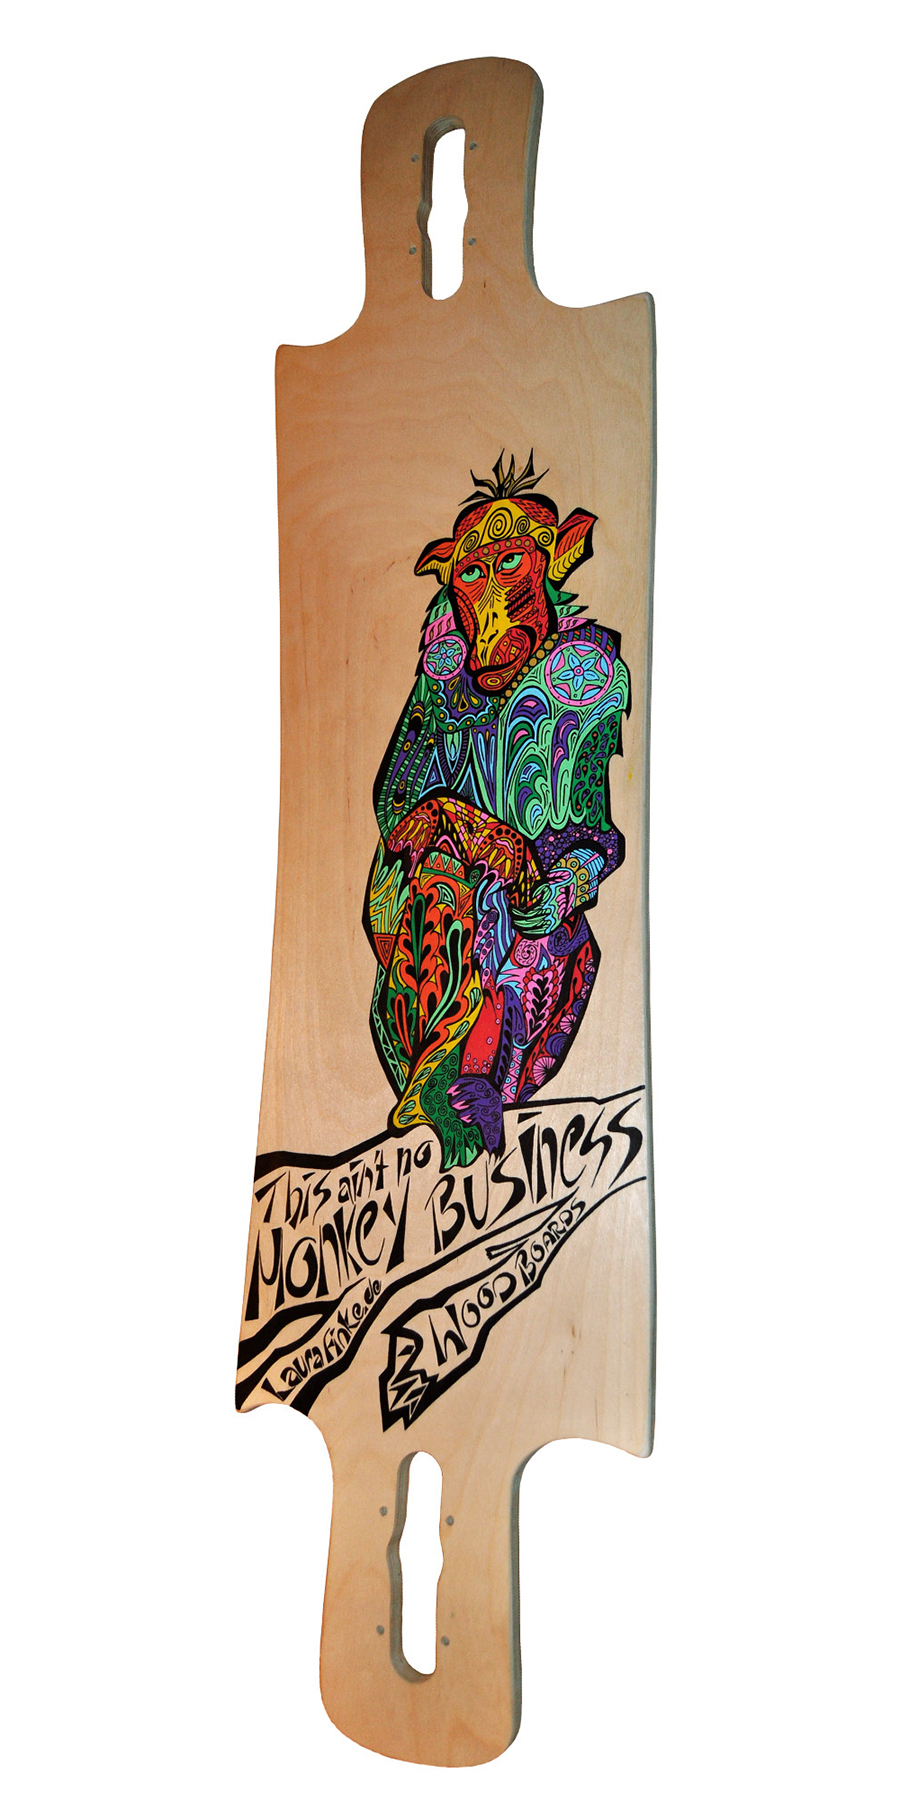 Laura Finke Illustration – Longboard: This Ain't No Monkey Business